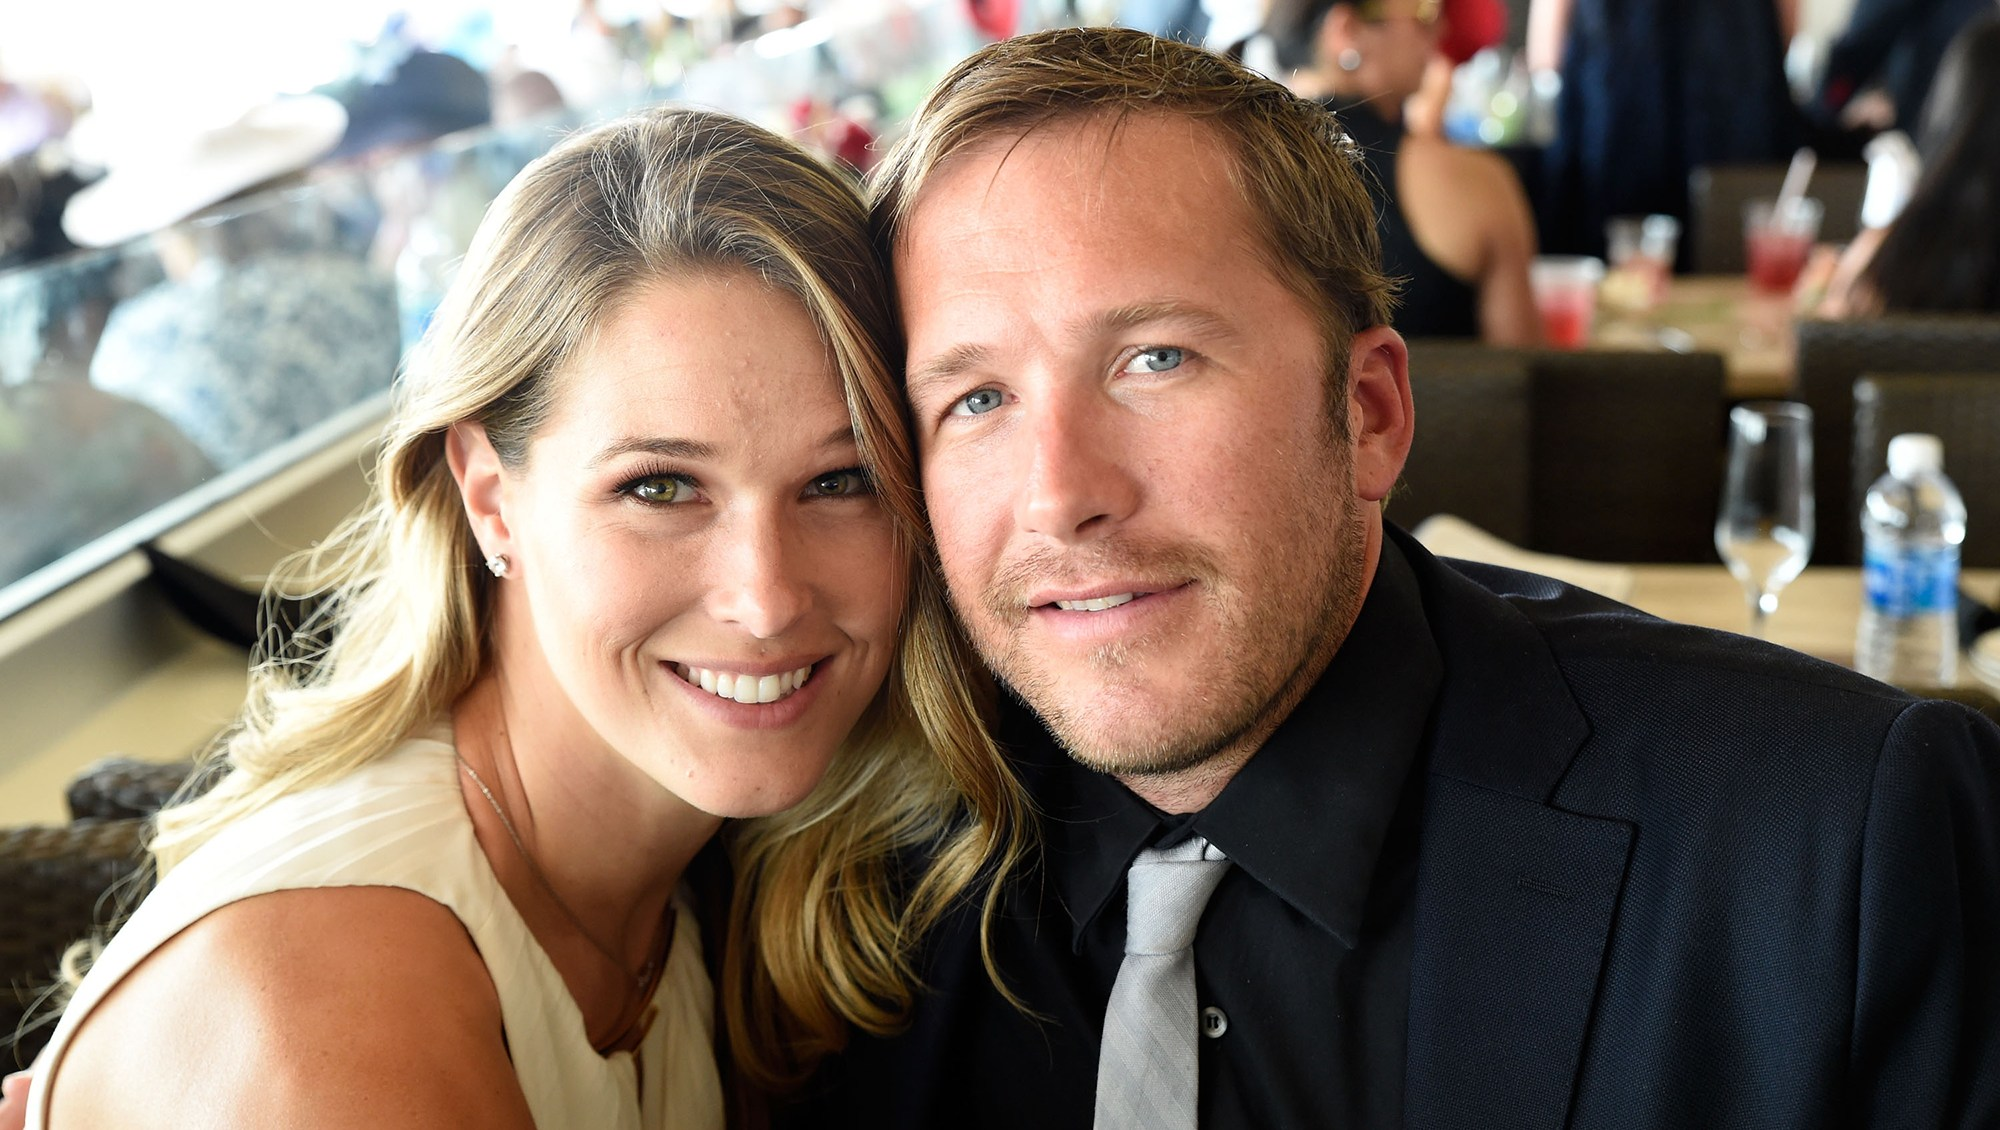 Morgan Miller and Bode Miller